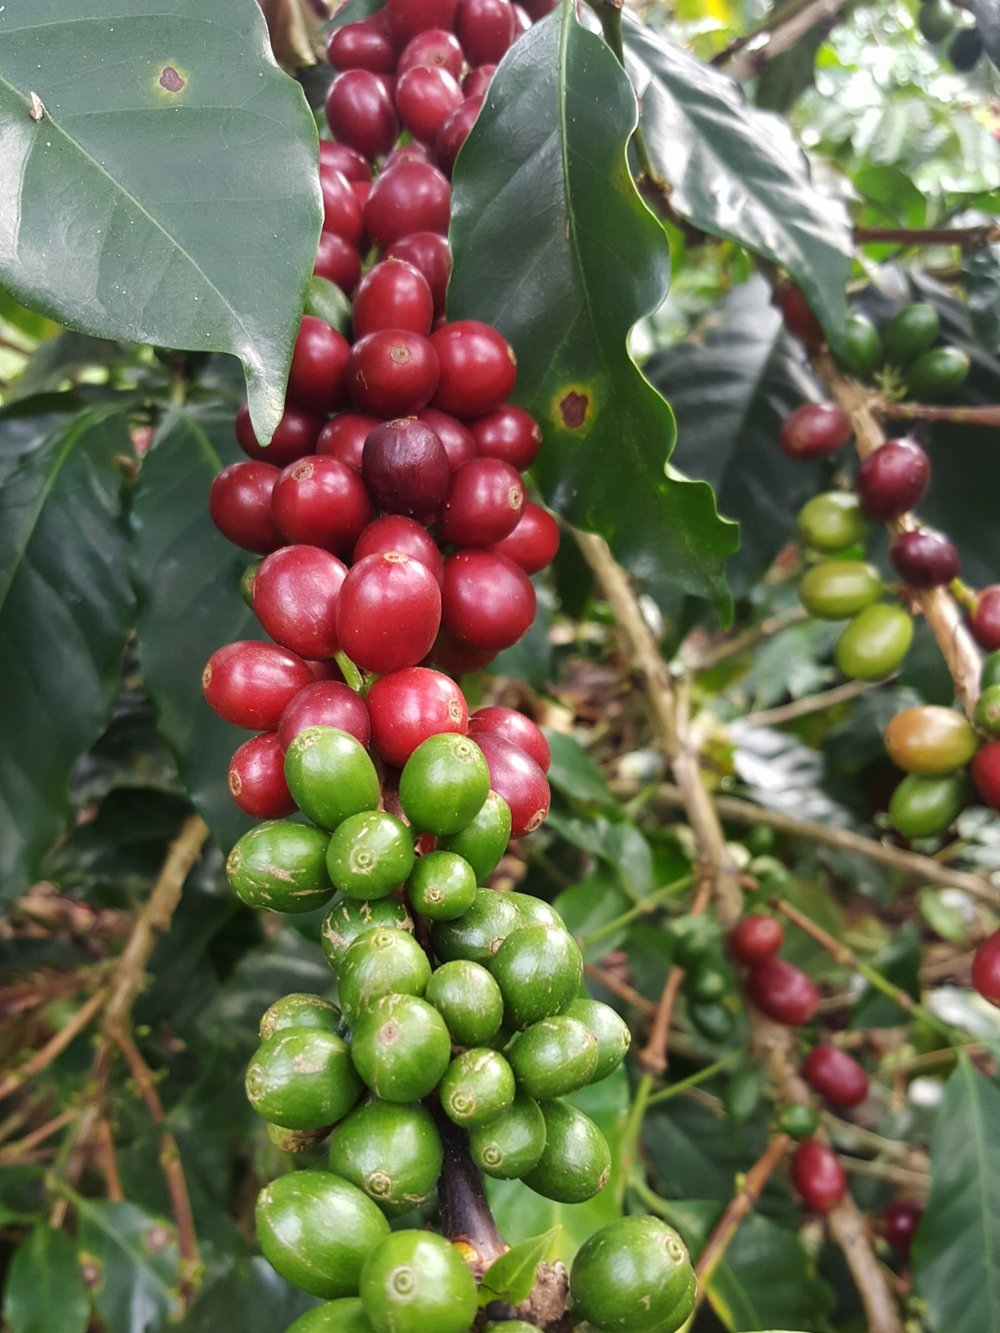 Ripe and unripe coffee cherries on the same tree branch.